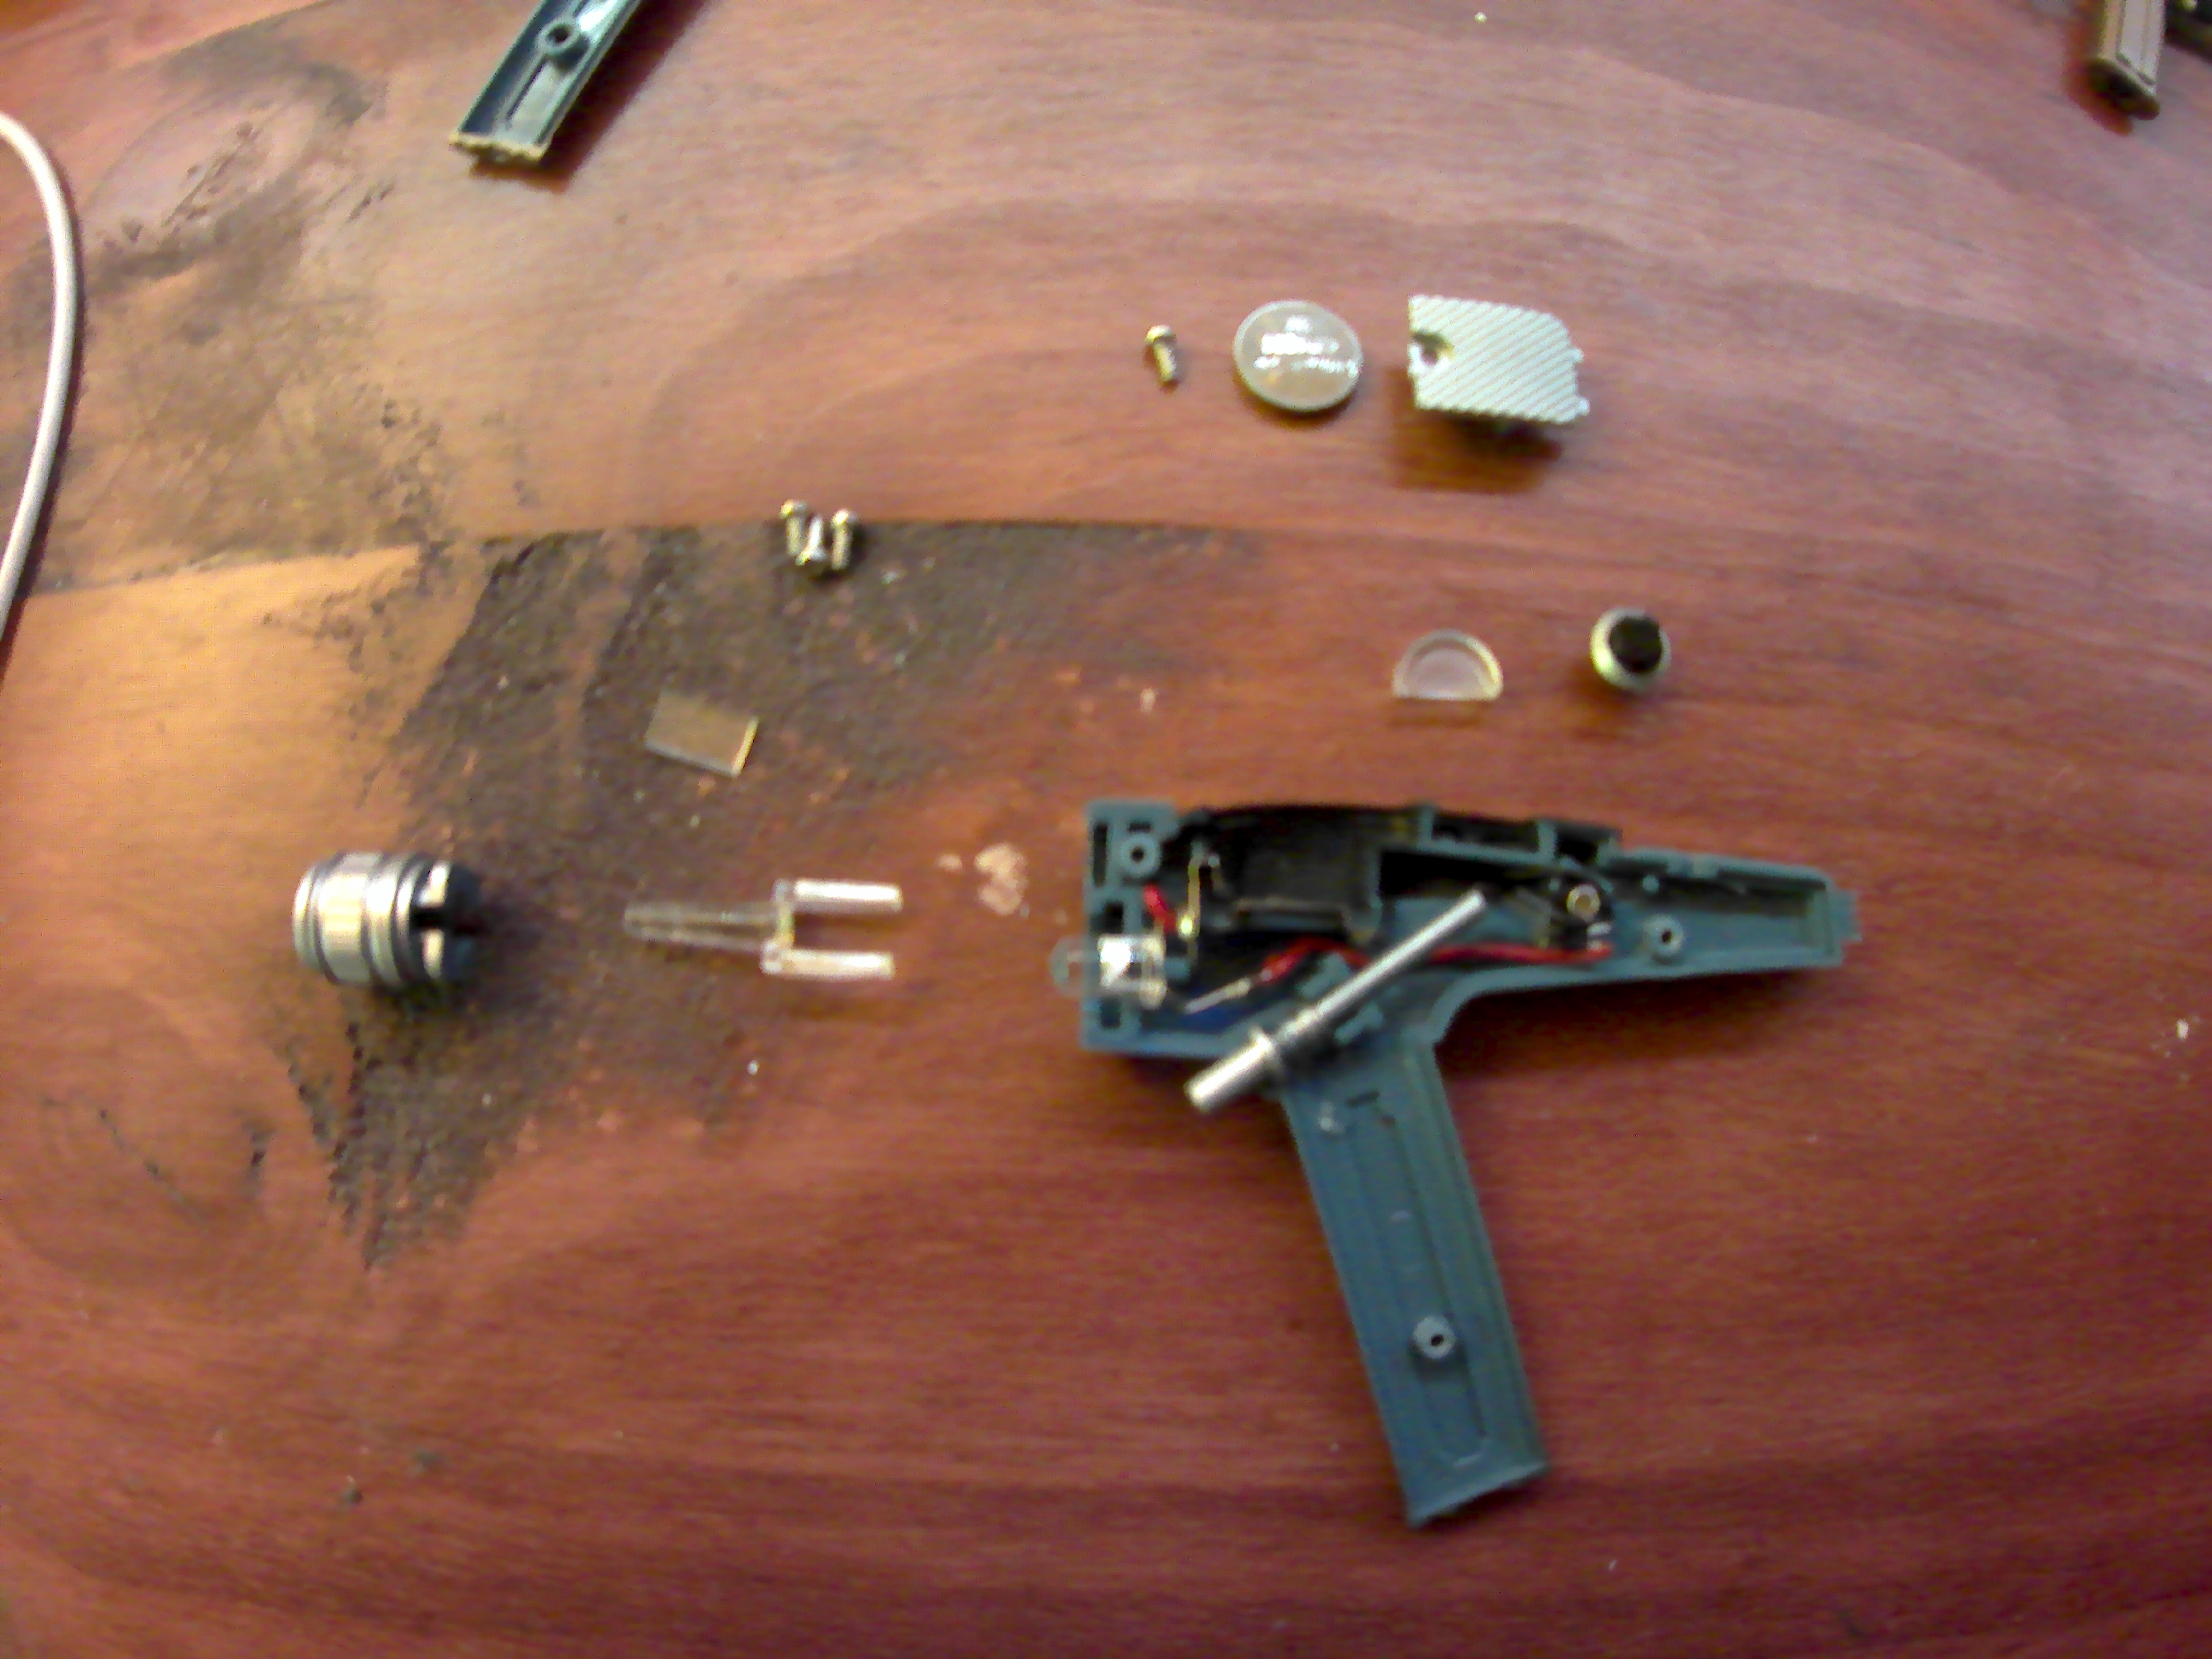 Picture of Disassembly and Removal of Unnecessary Parts